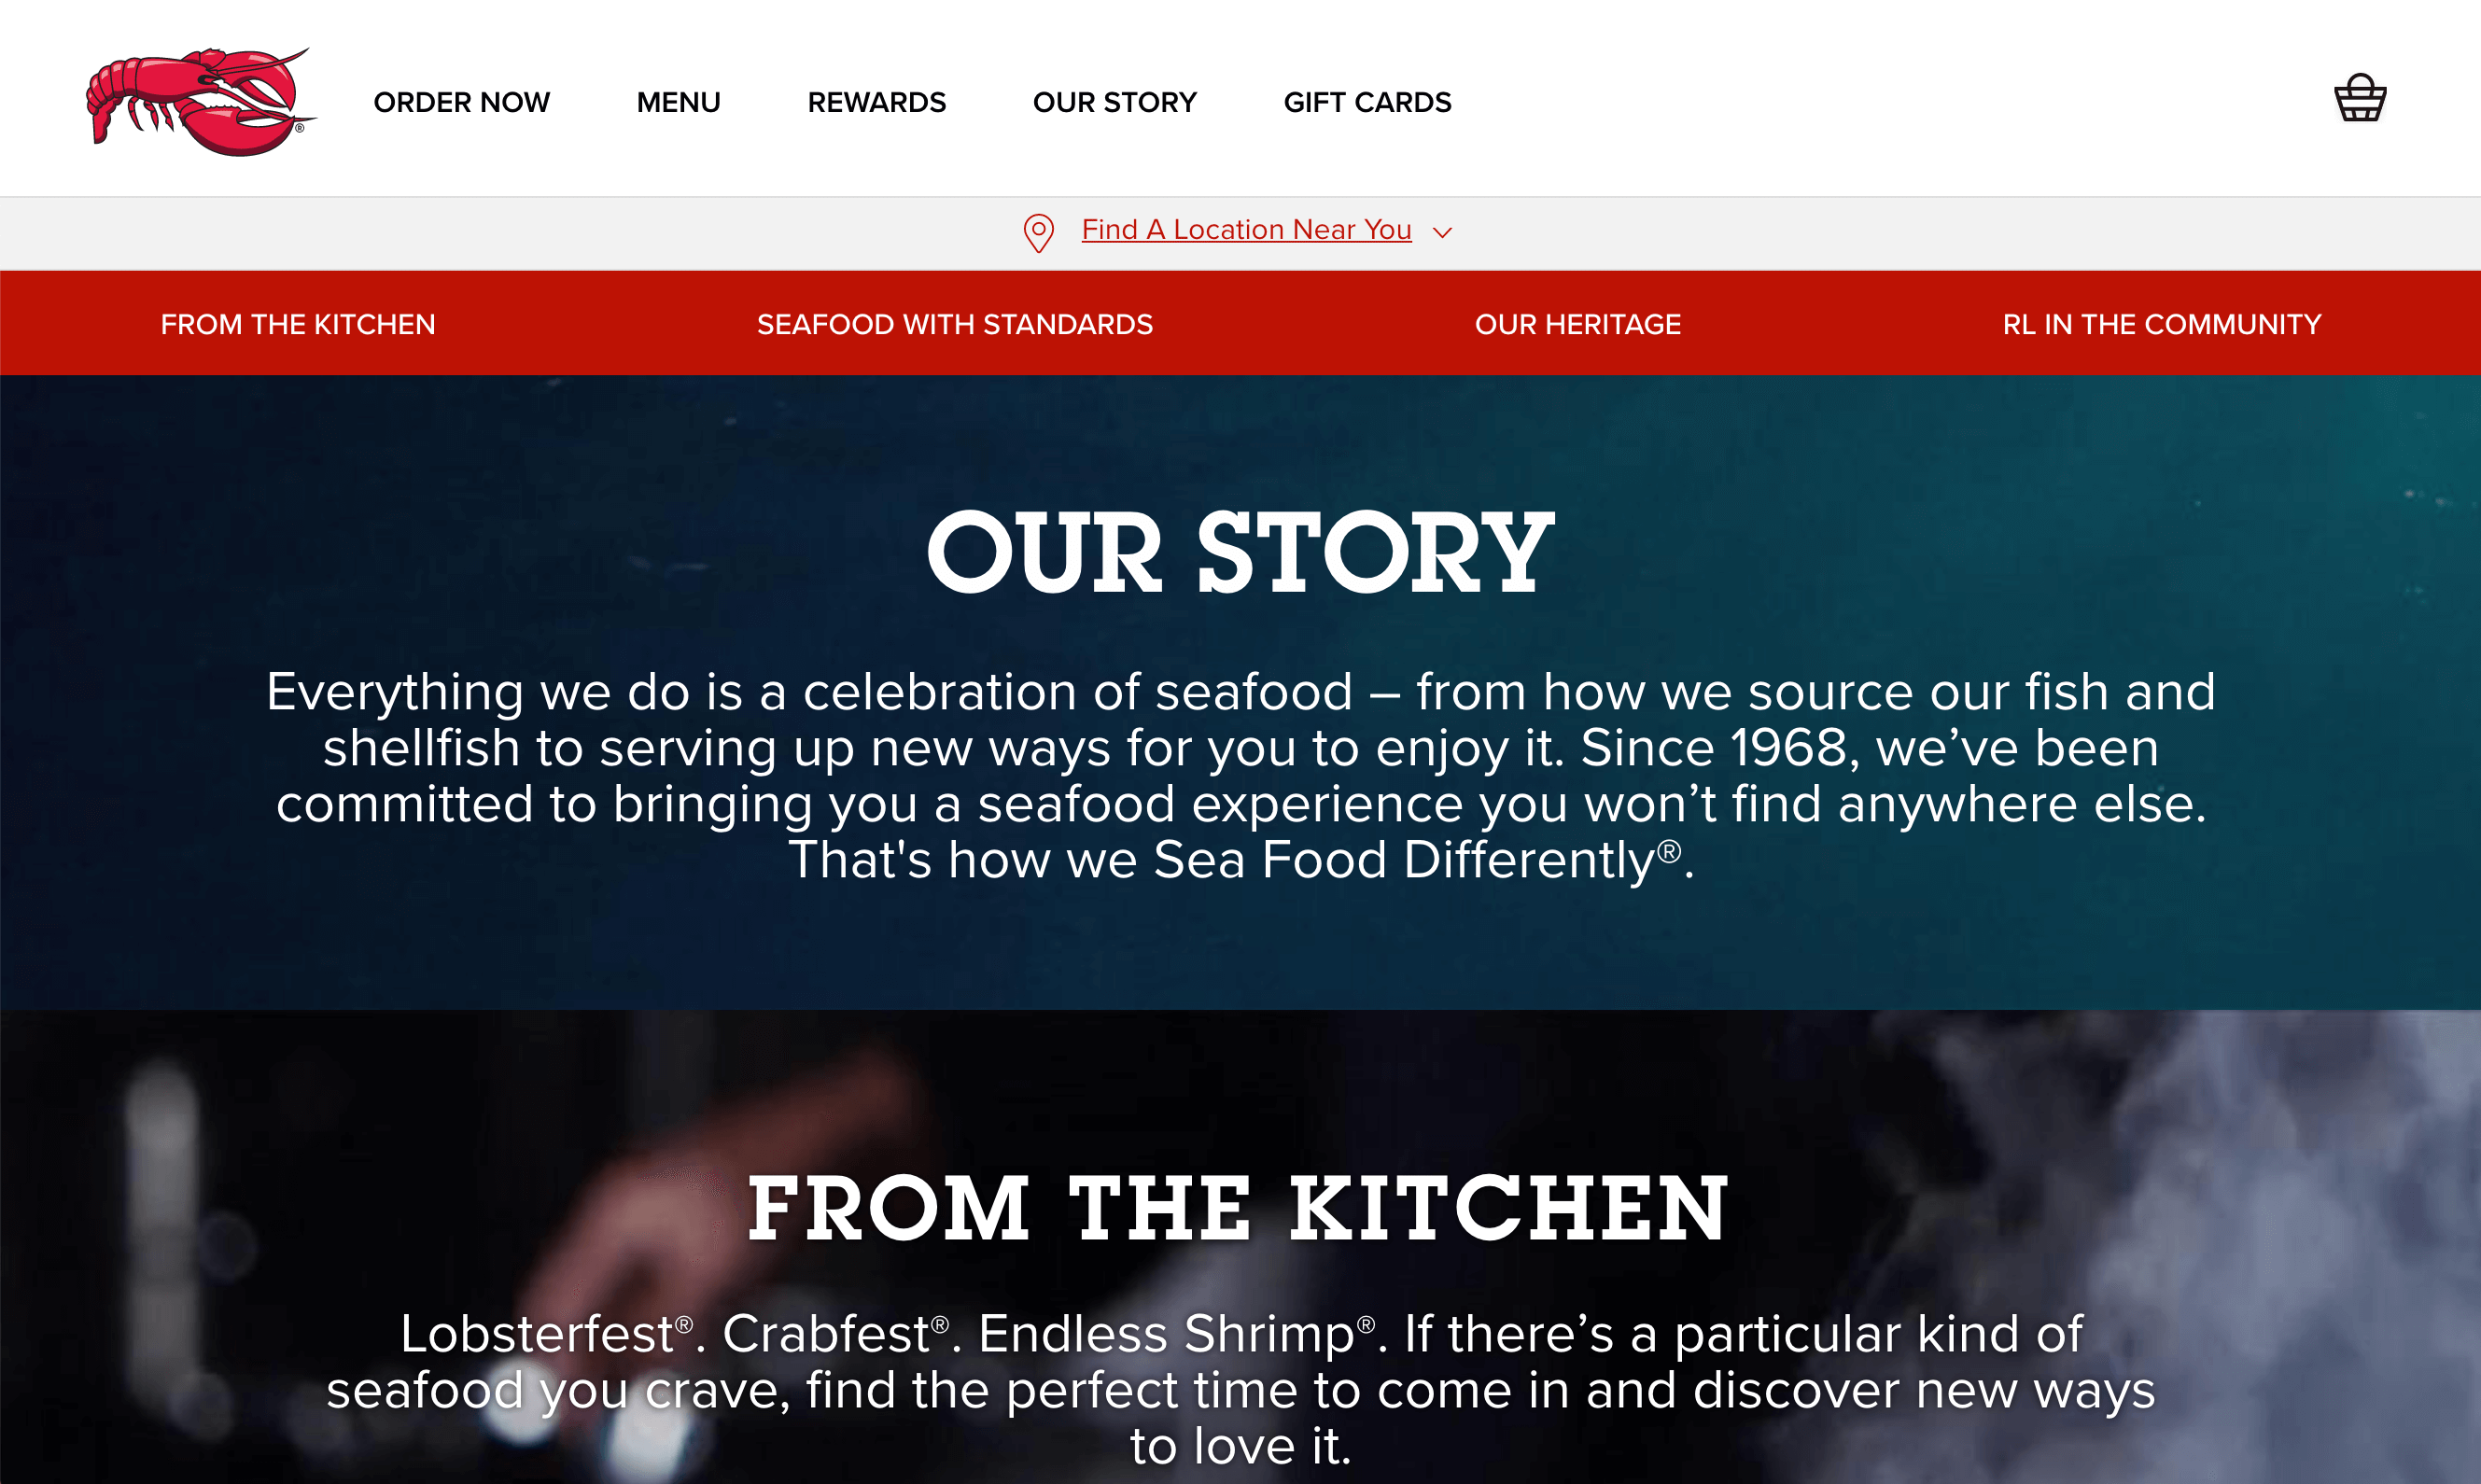 The About page for Red Lobster.